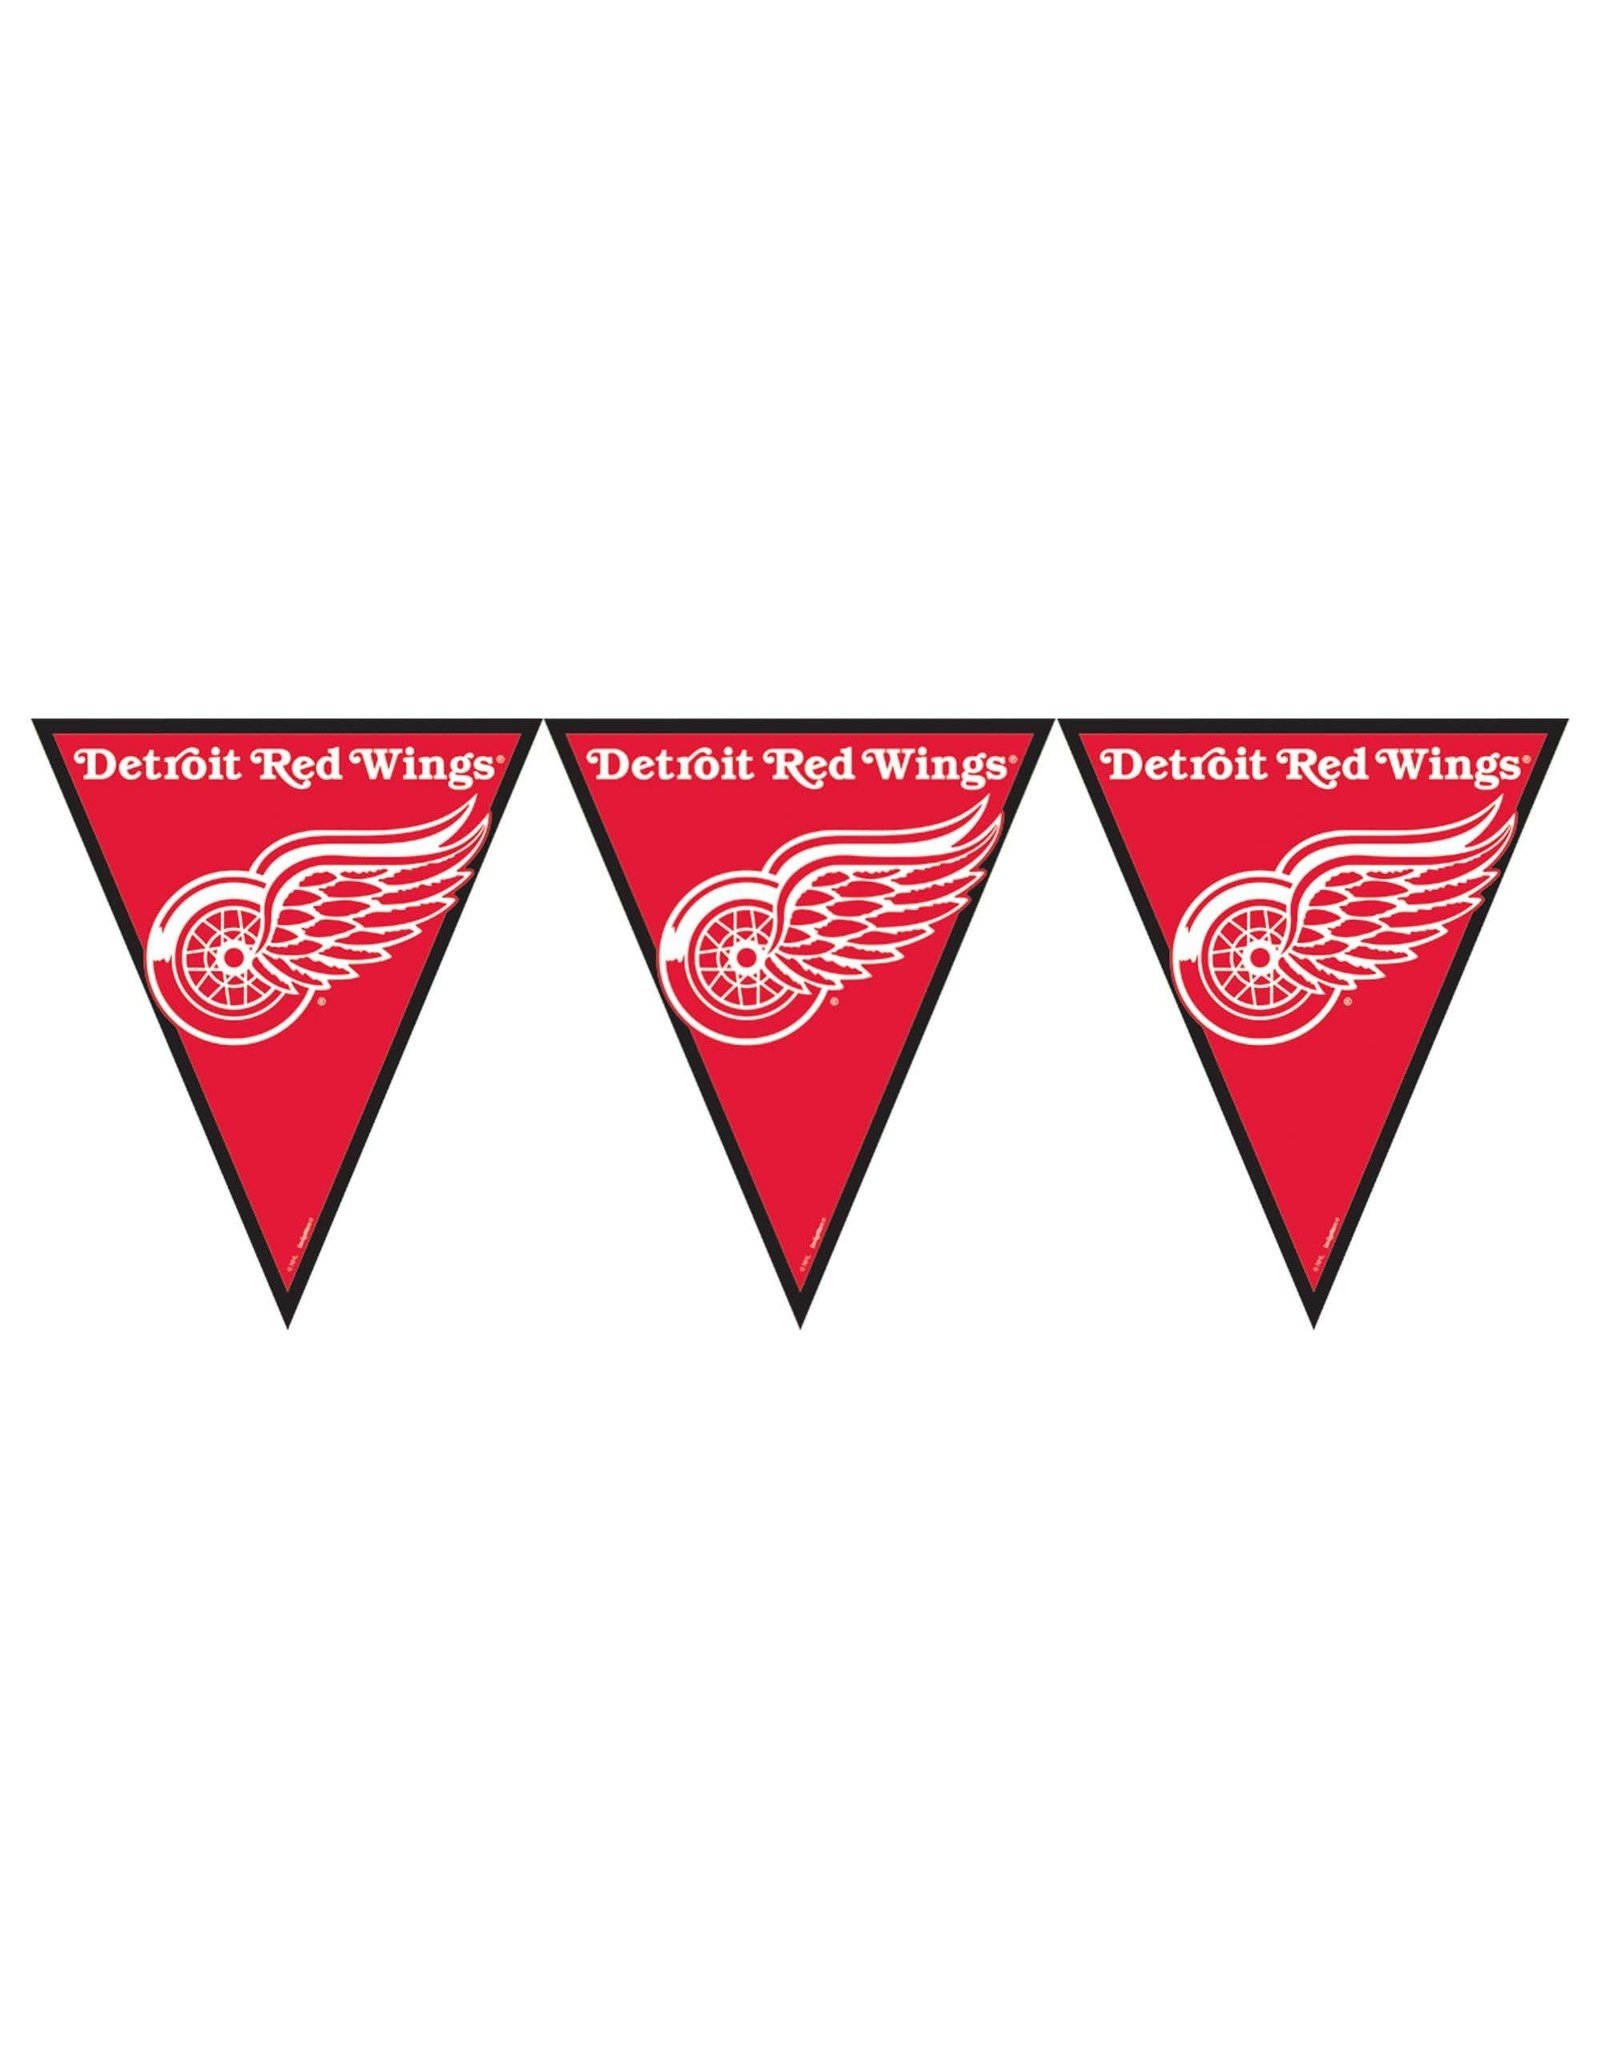 DesignWare Detroit Red Wings Pennant Banner - 12ft.